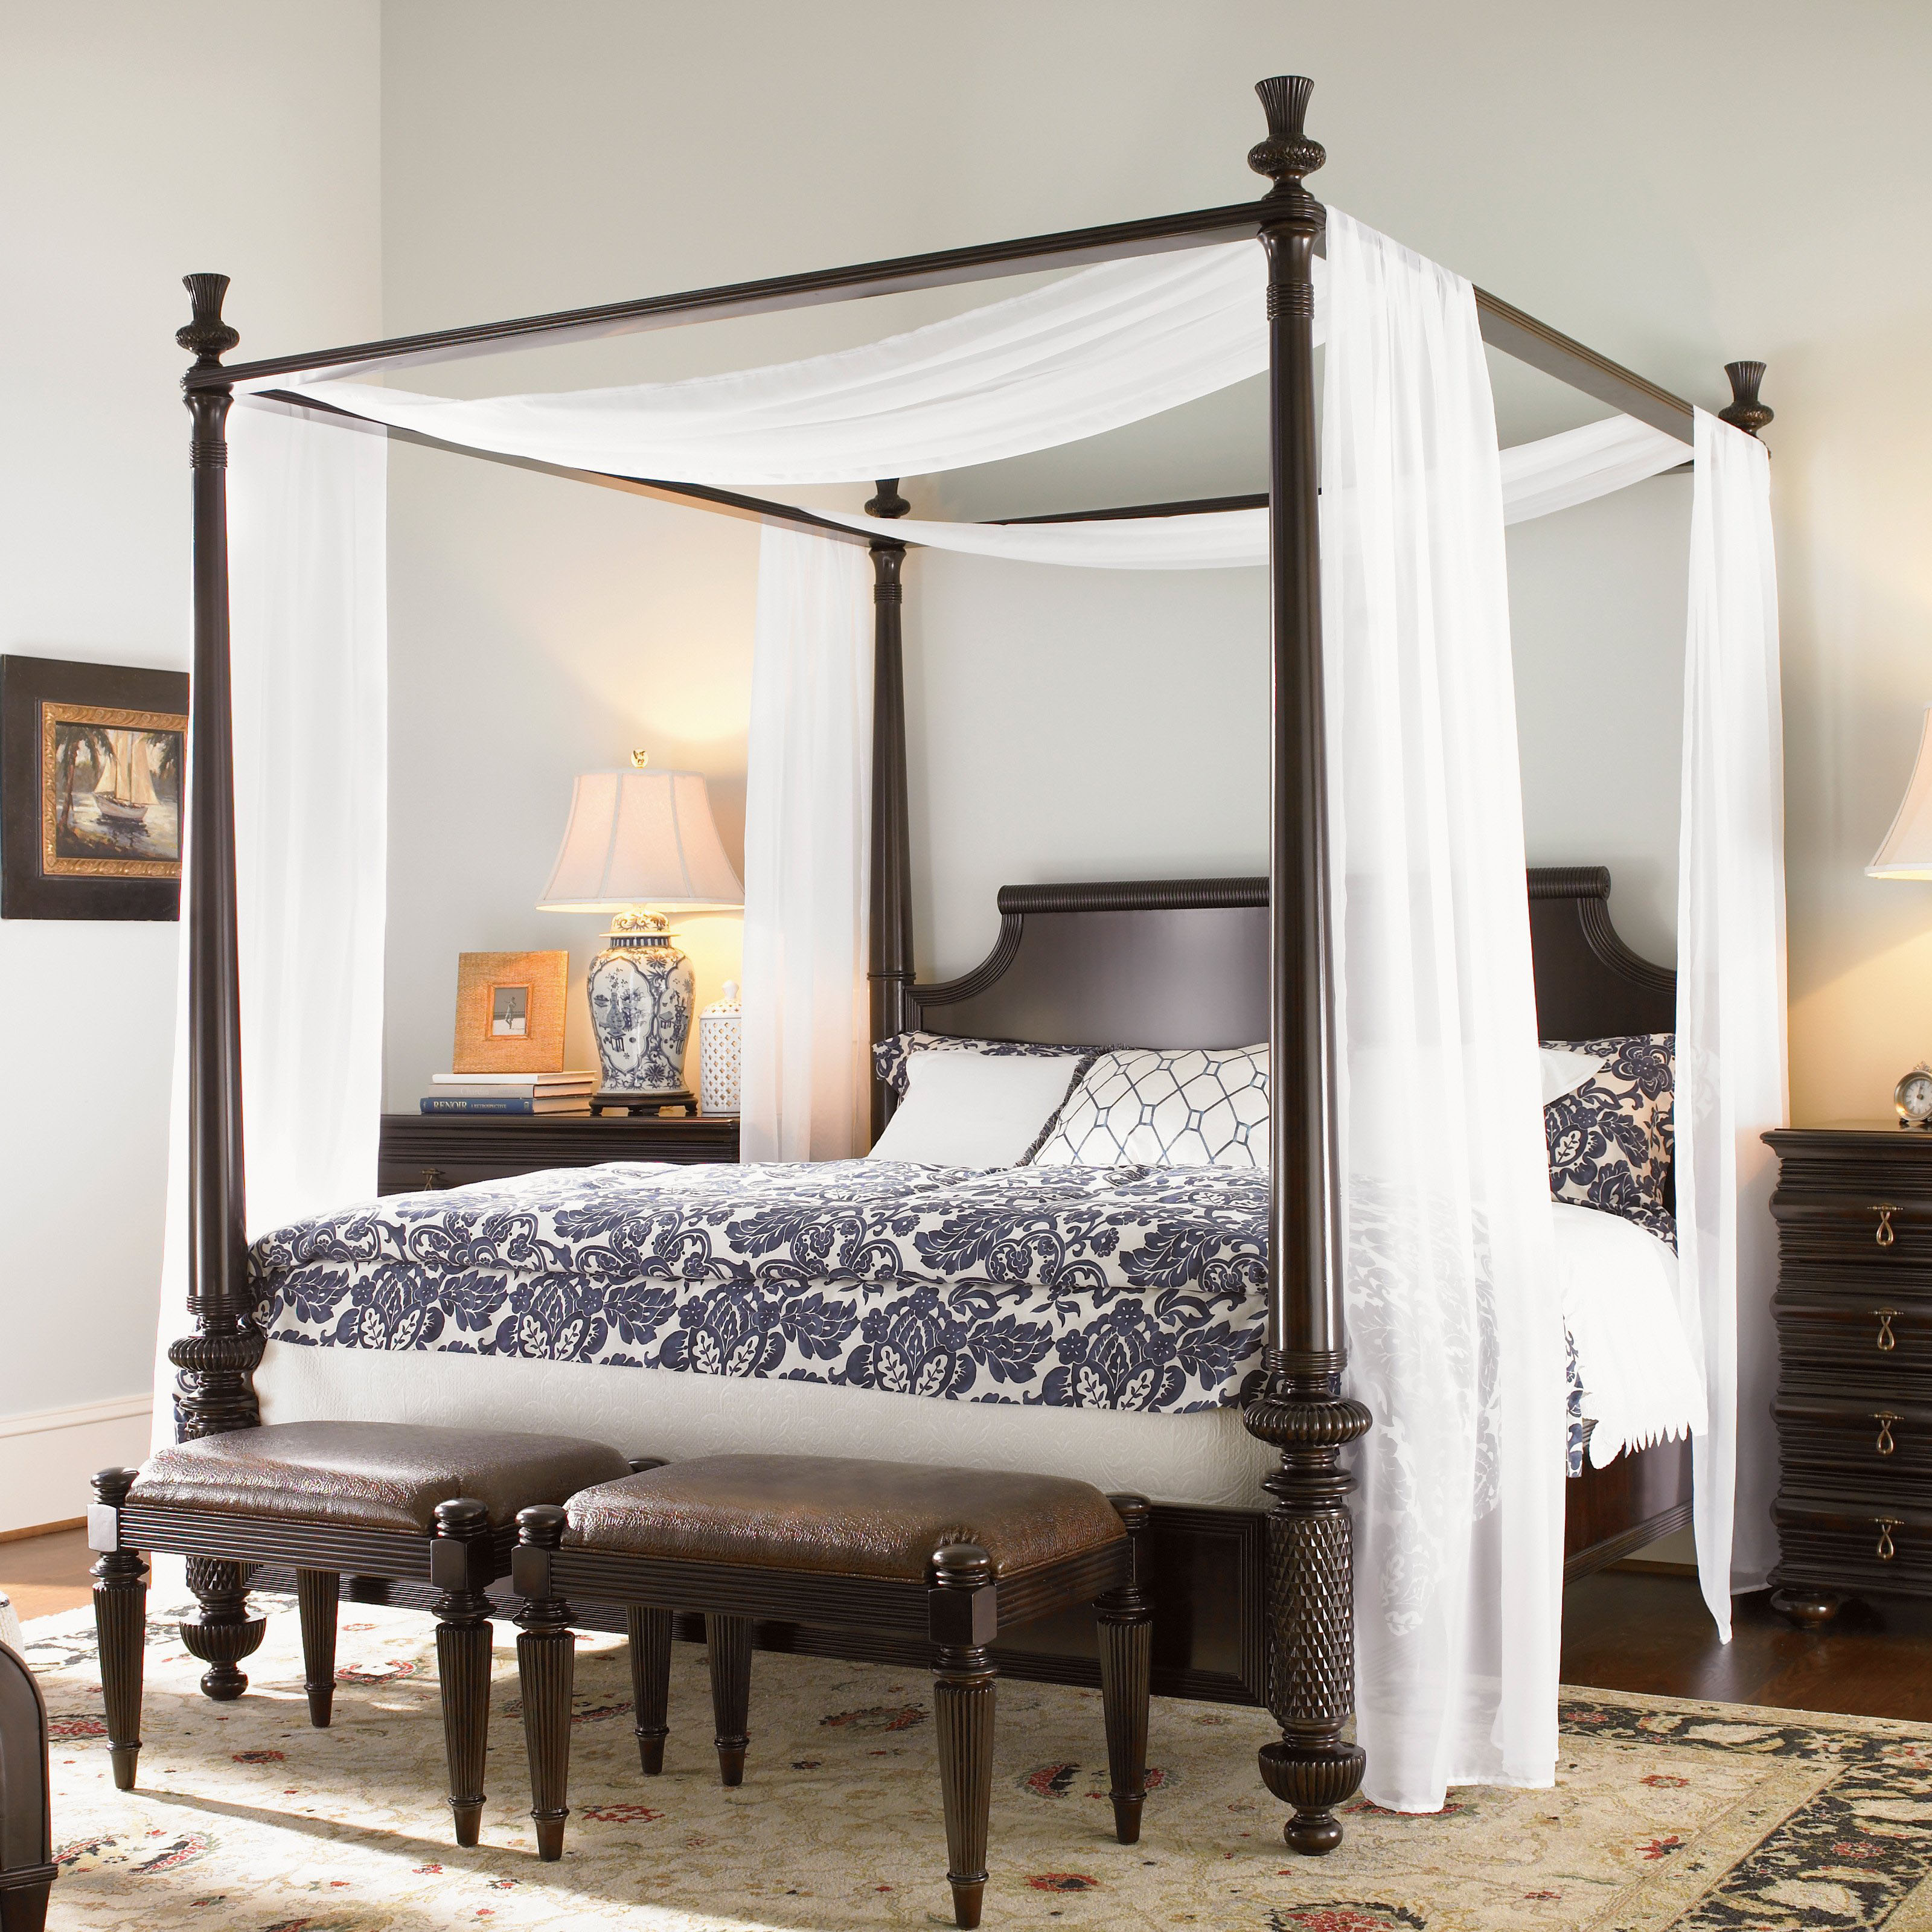 Canopy beds For the Modern Bedroom Freshome (36)